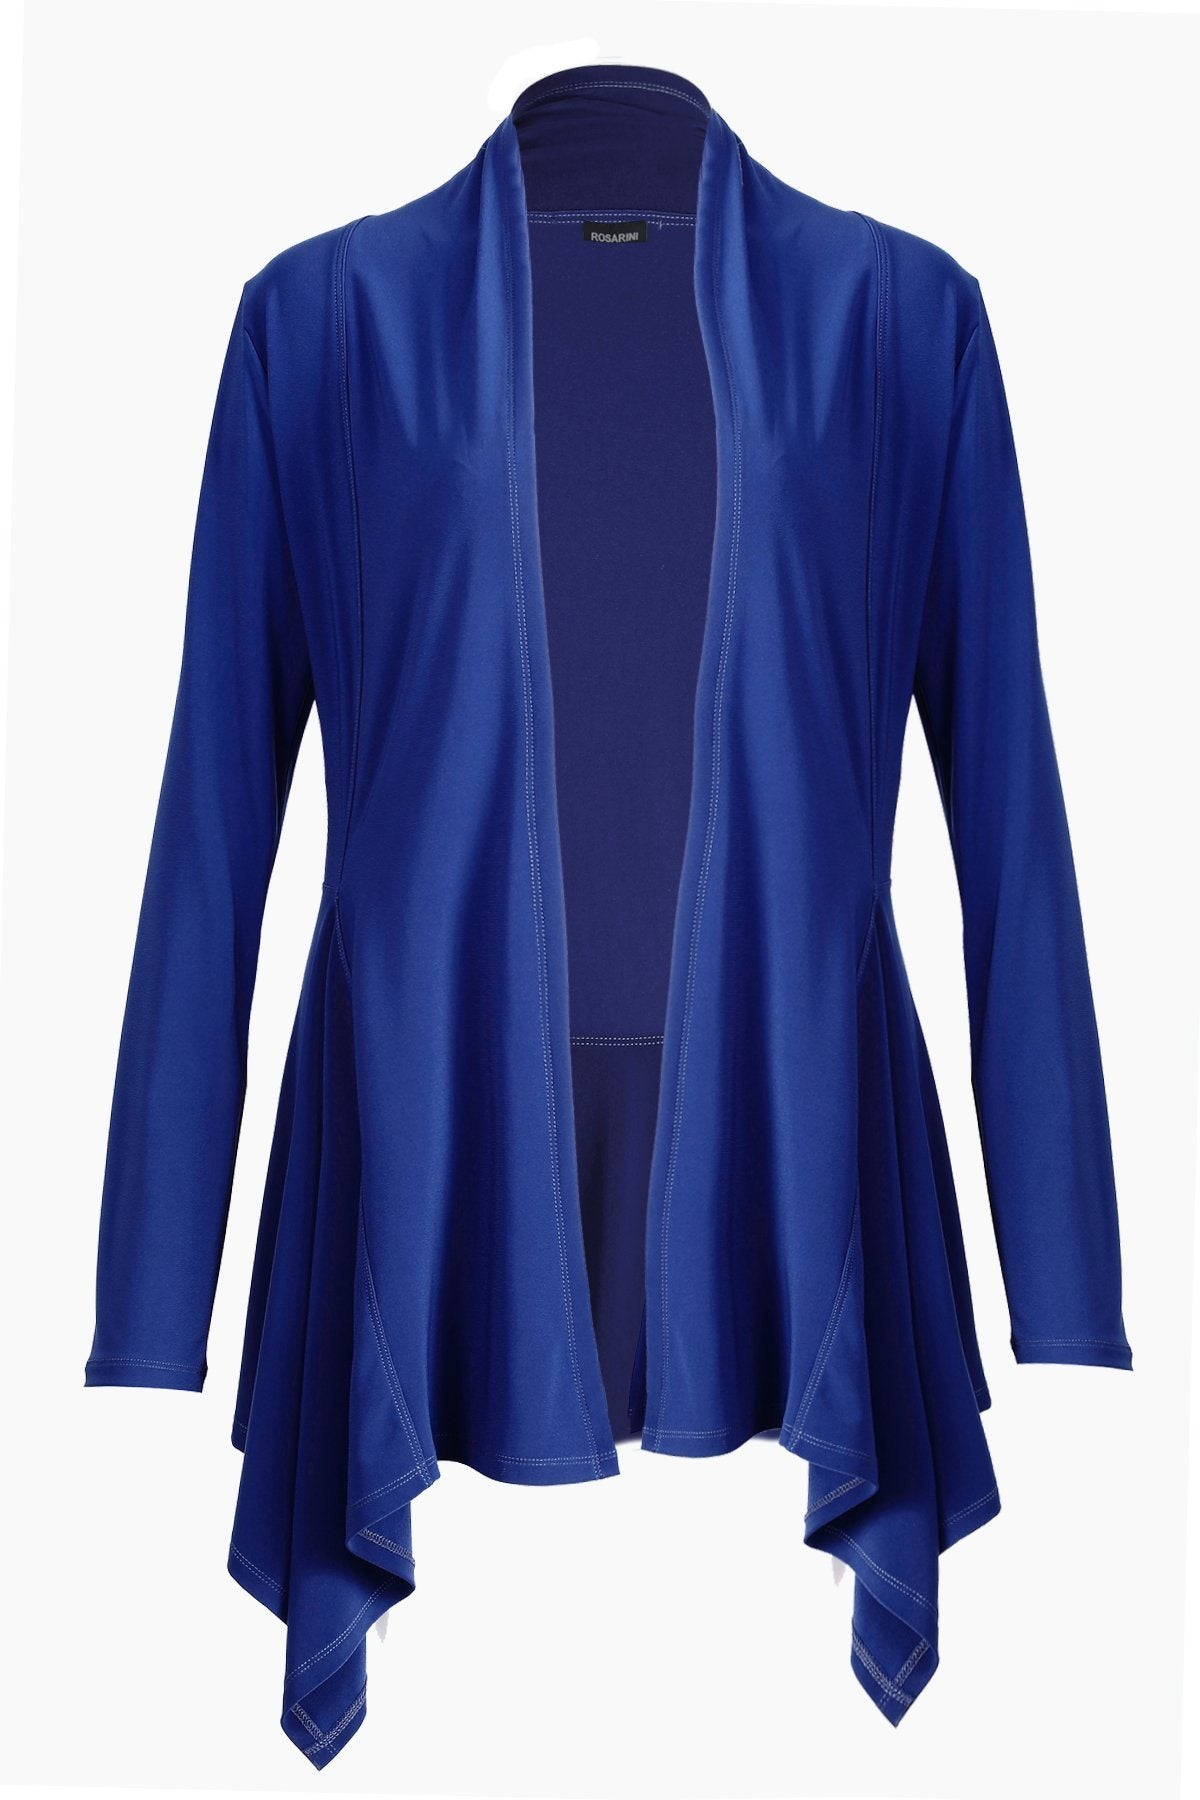 Women's Blue Long Sleeve Long Edge Cardigan Rosarini